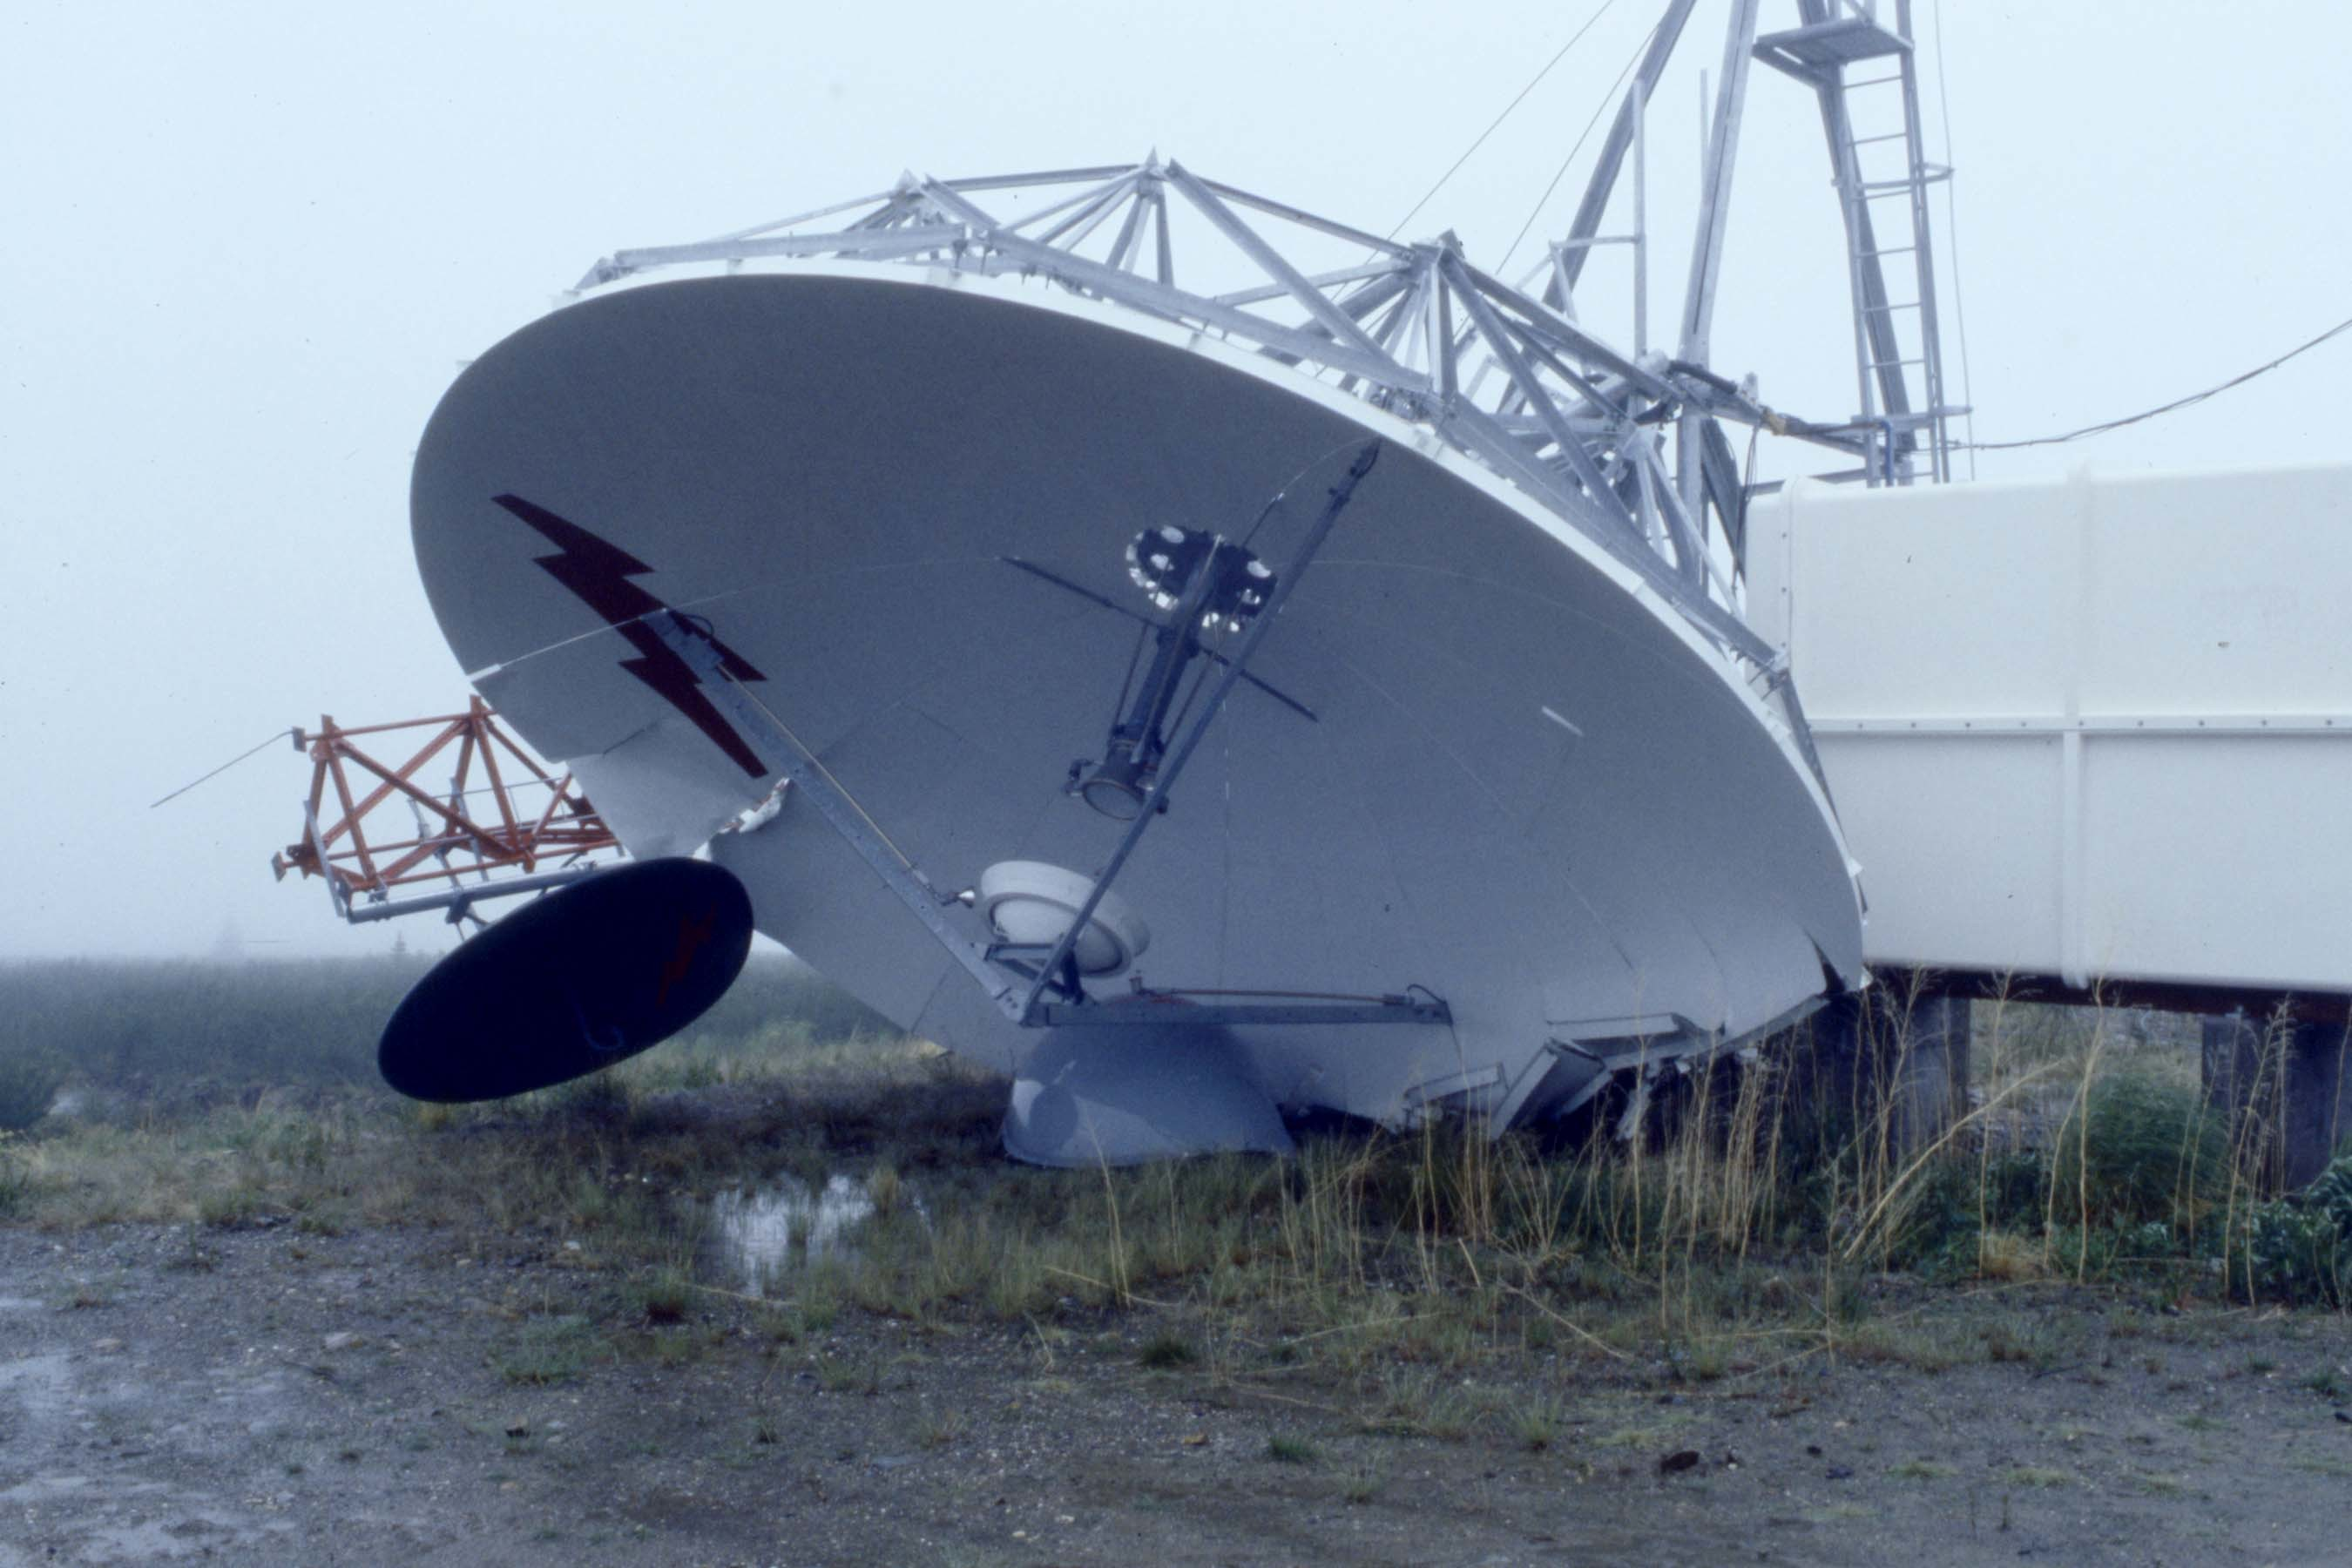 The full force of the tower came down on top of the satellite dish. (Tim Kinvig)